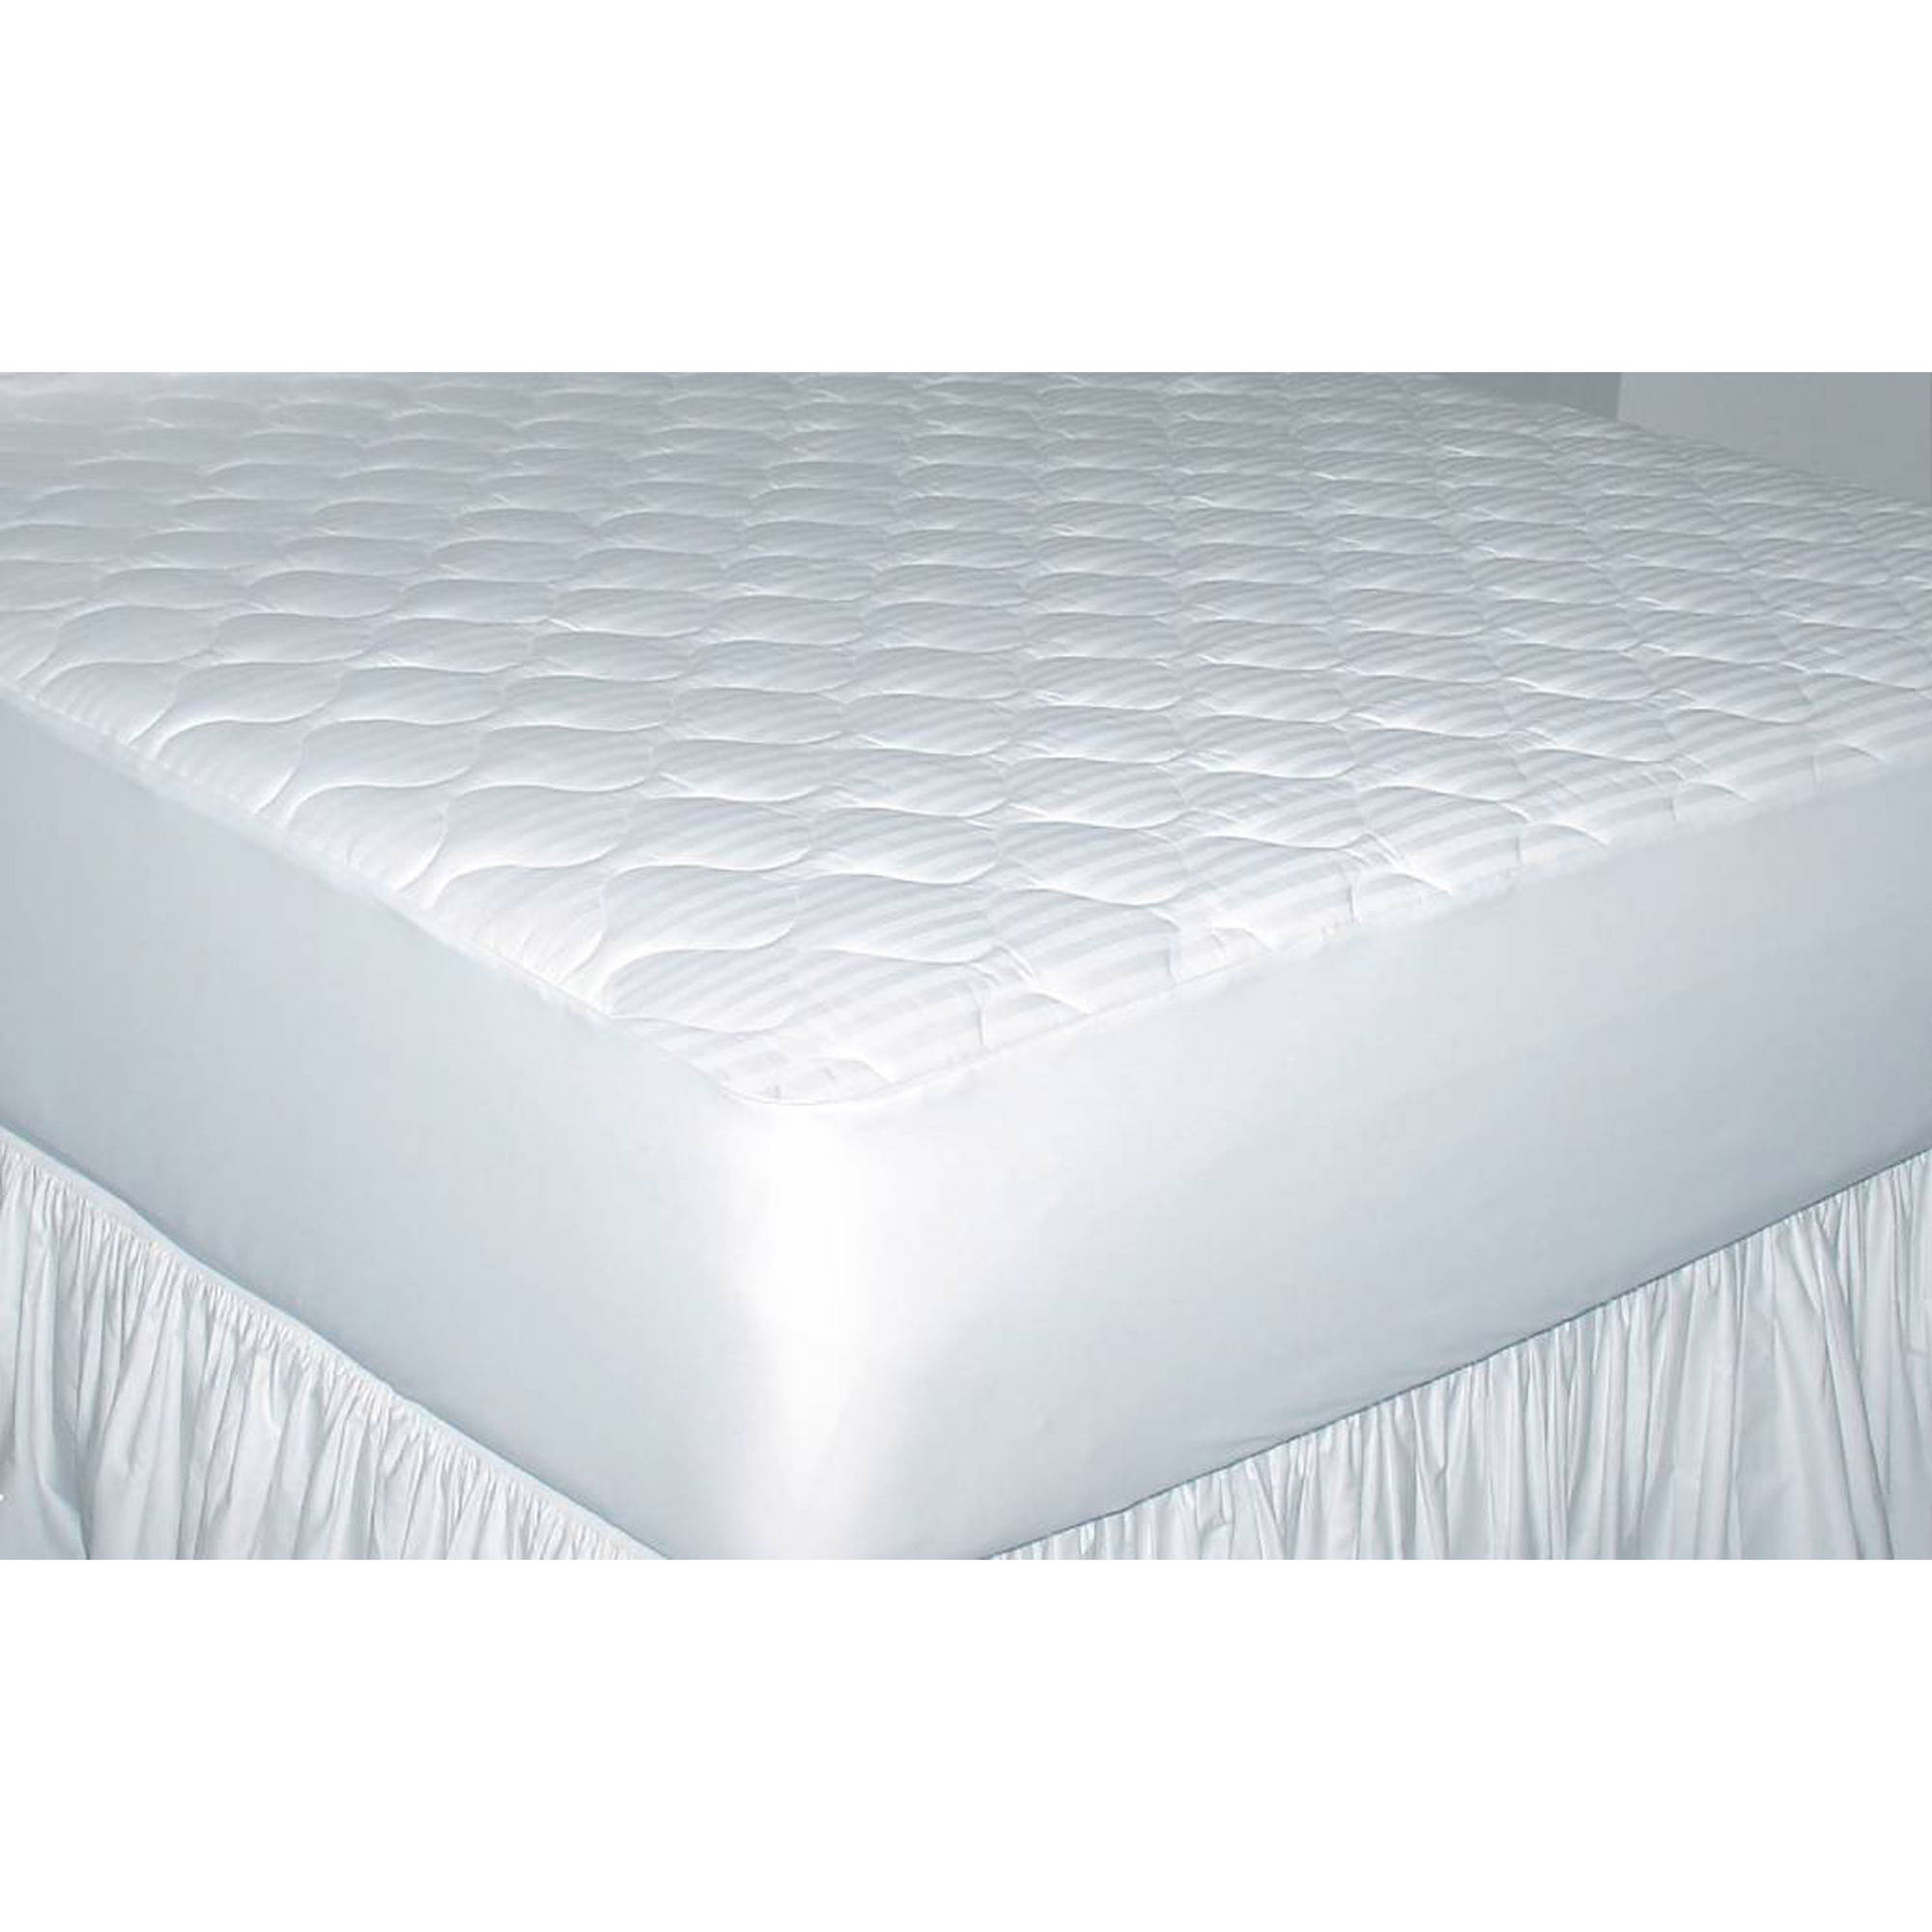 twin size waterproof mattress protector Quiet Comfort Waterproof Mattress Pad   Walmart.com twin size waterproof mattress protector